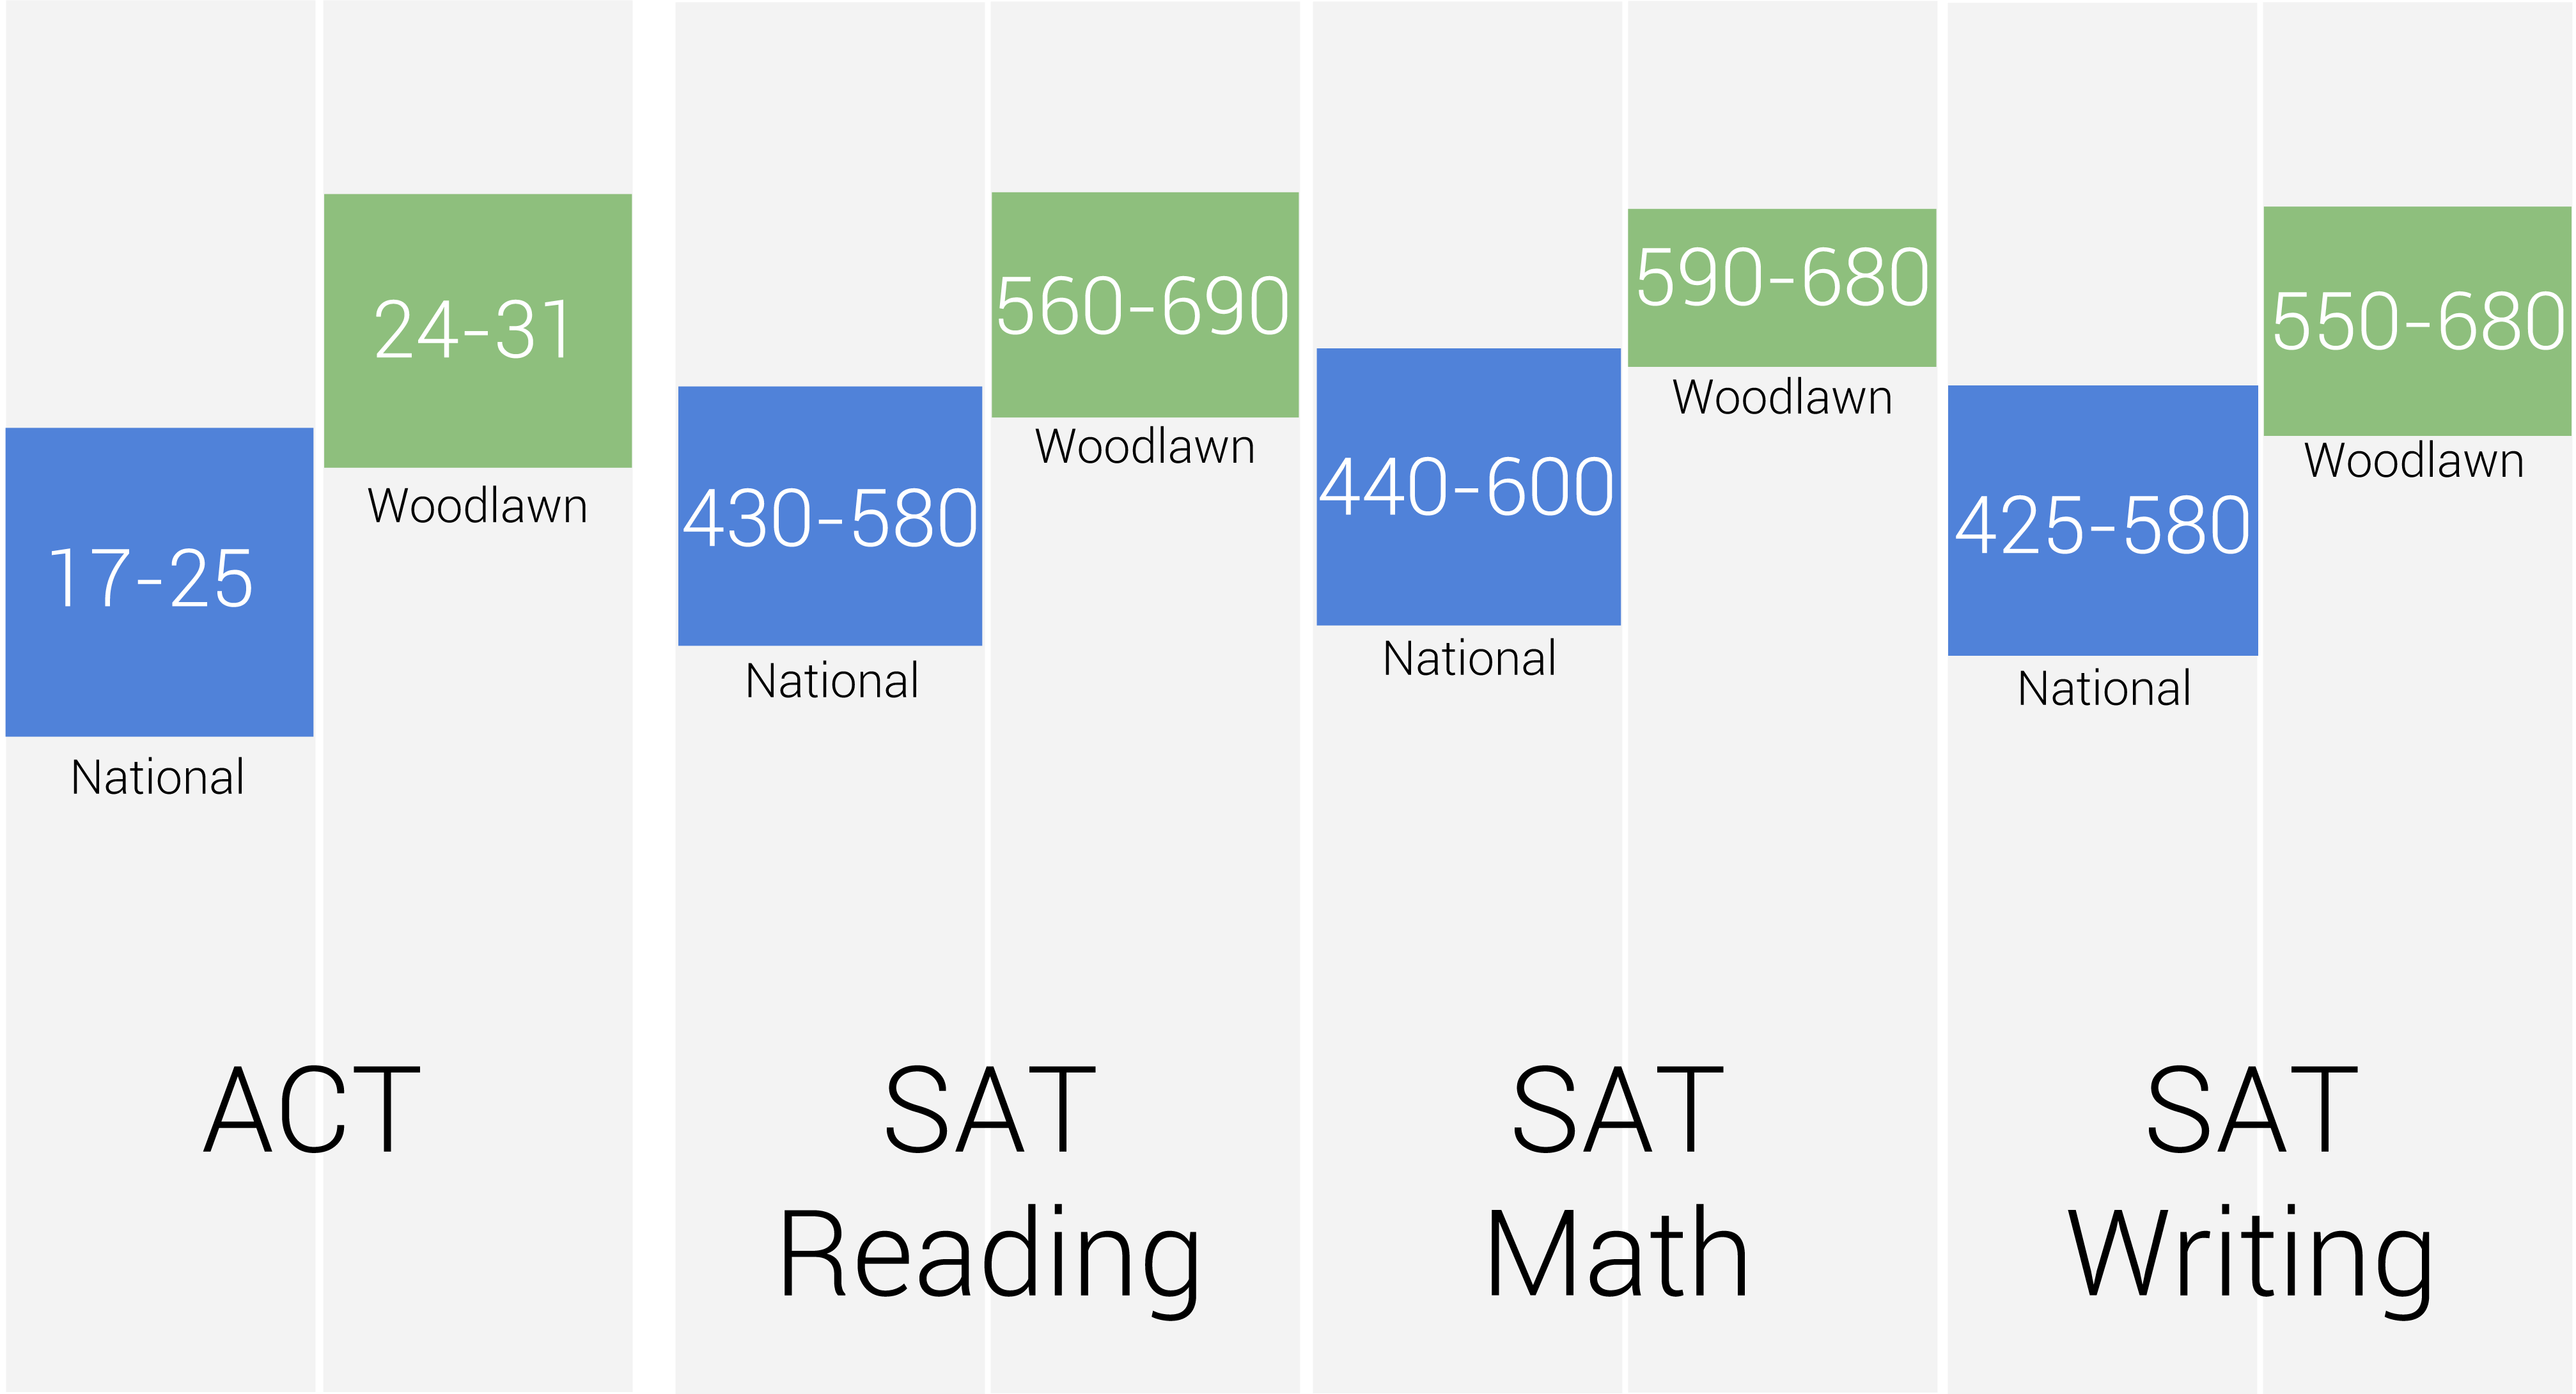 SAT/ACT Results